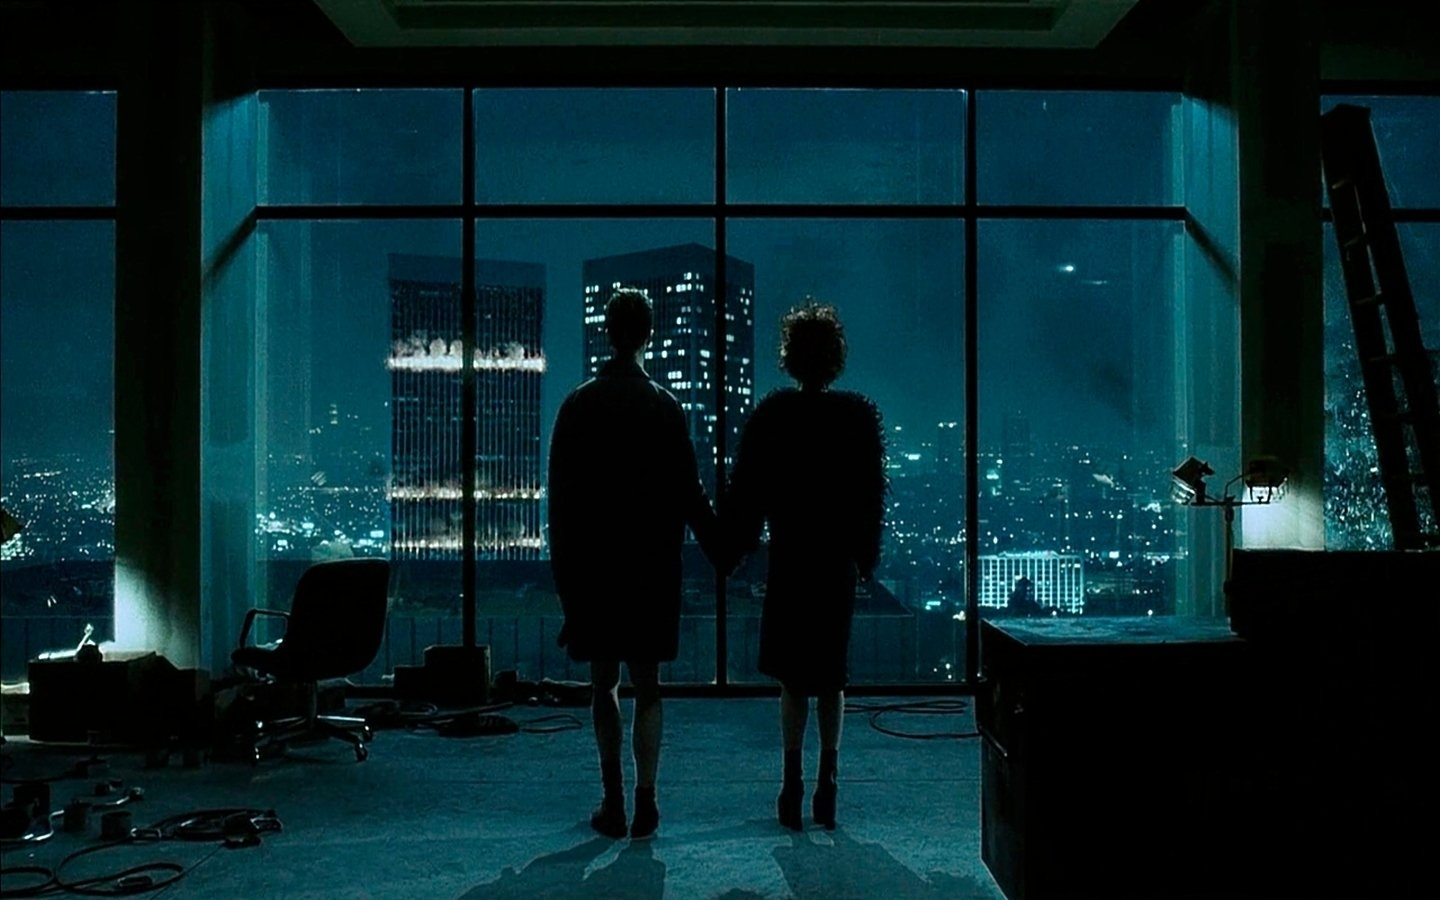 82 fight club hd wallpapers | background images - wallpaper abyss